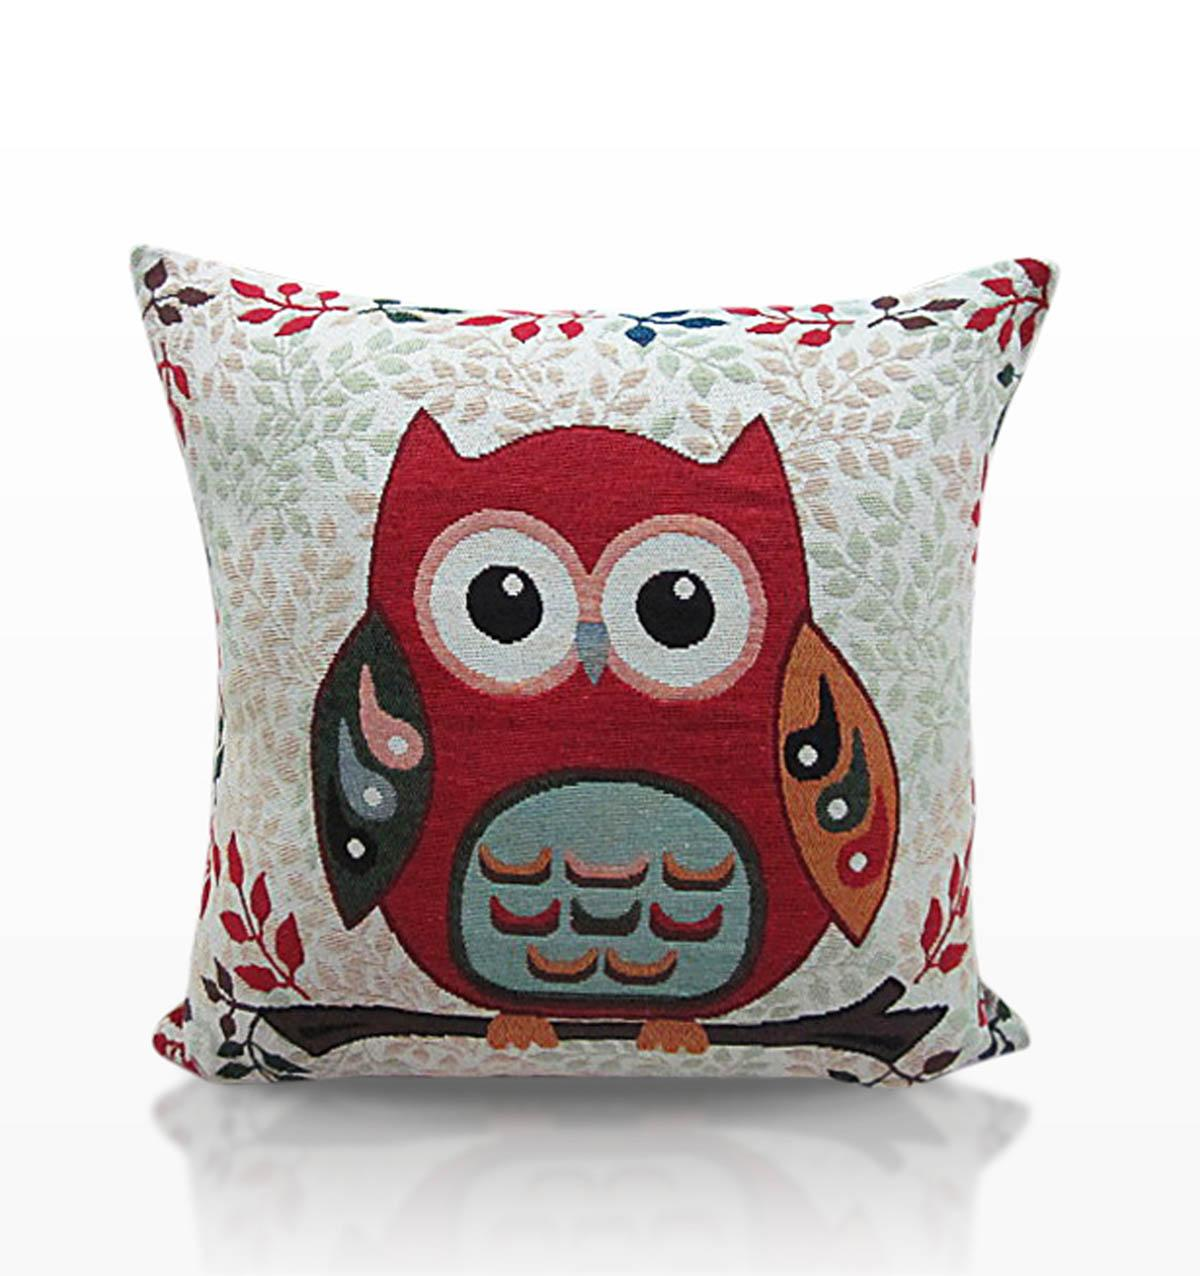 Alan Symonds Cushions And Throws Toowoo Cushion Filled Multi Picture